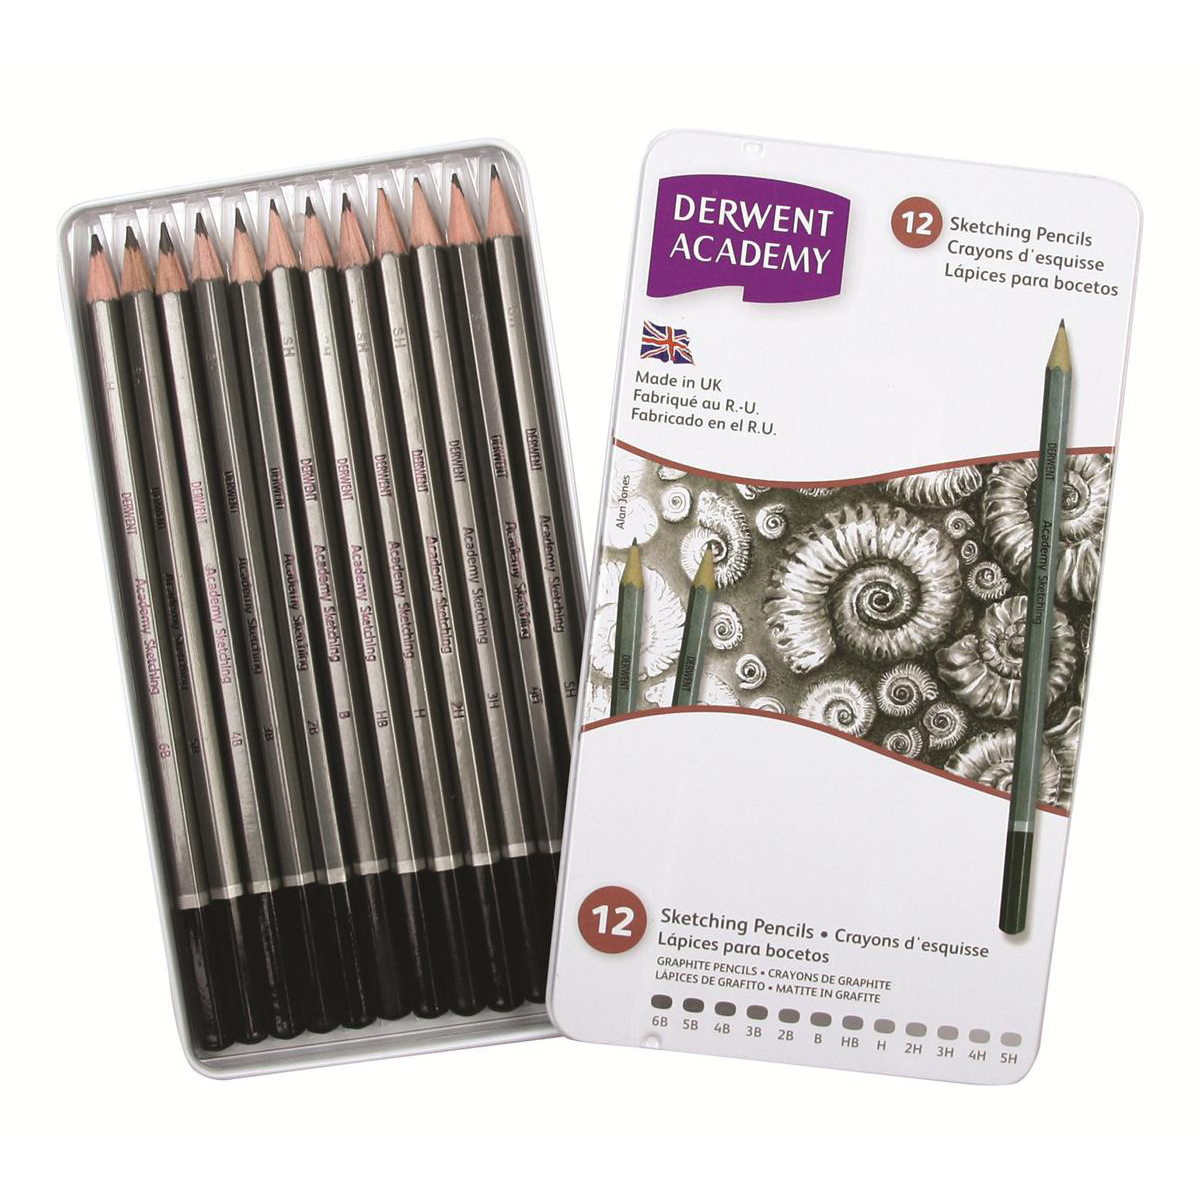 Derwent Academy Sketching Pencils 6B - 5H Ref 2301946 Pack 12